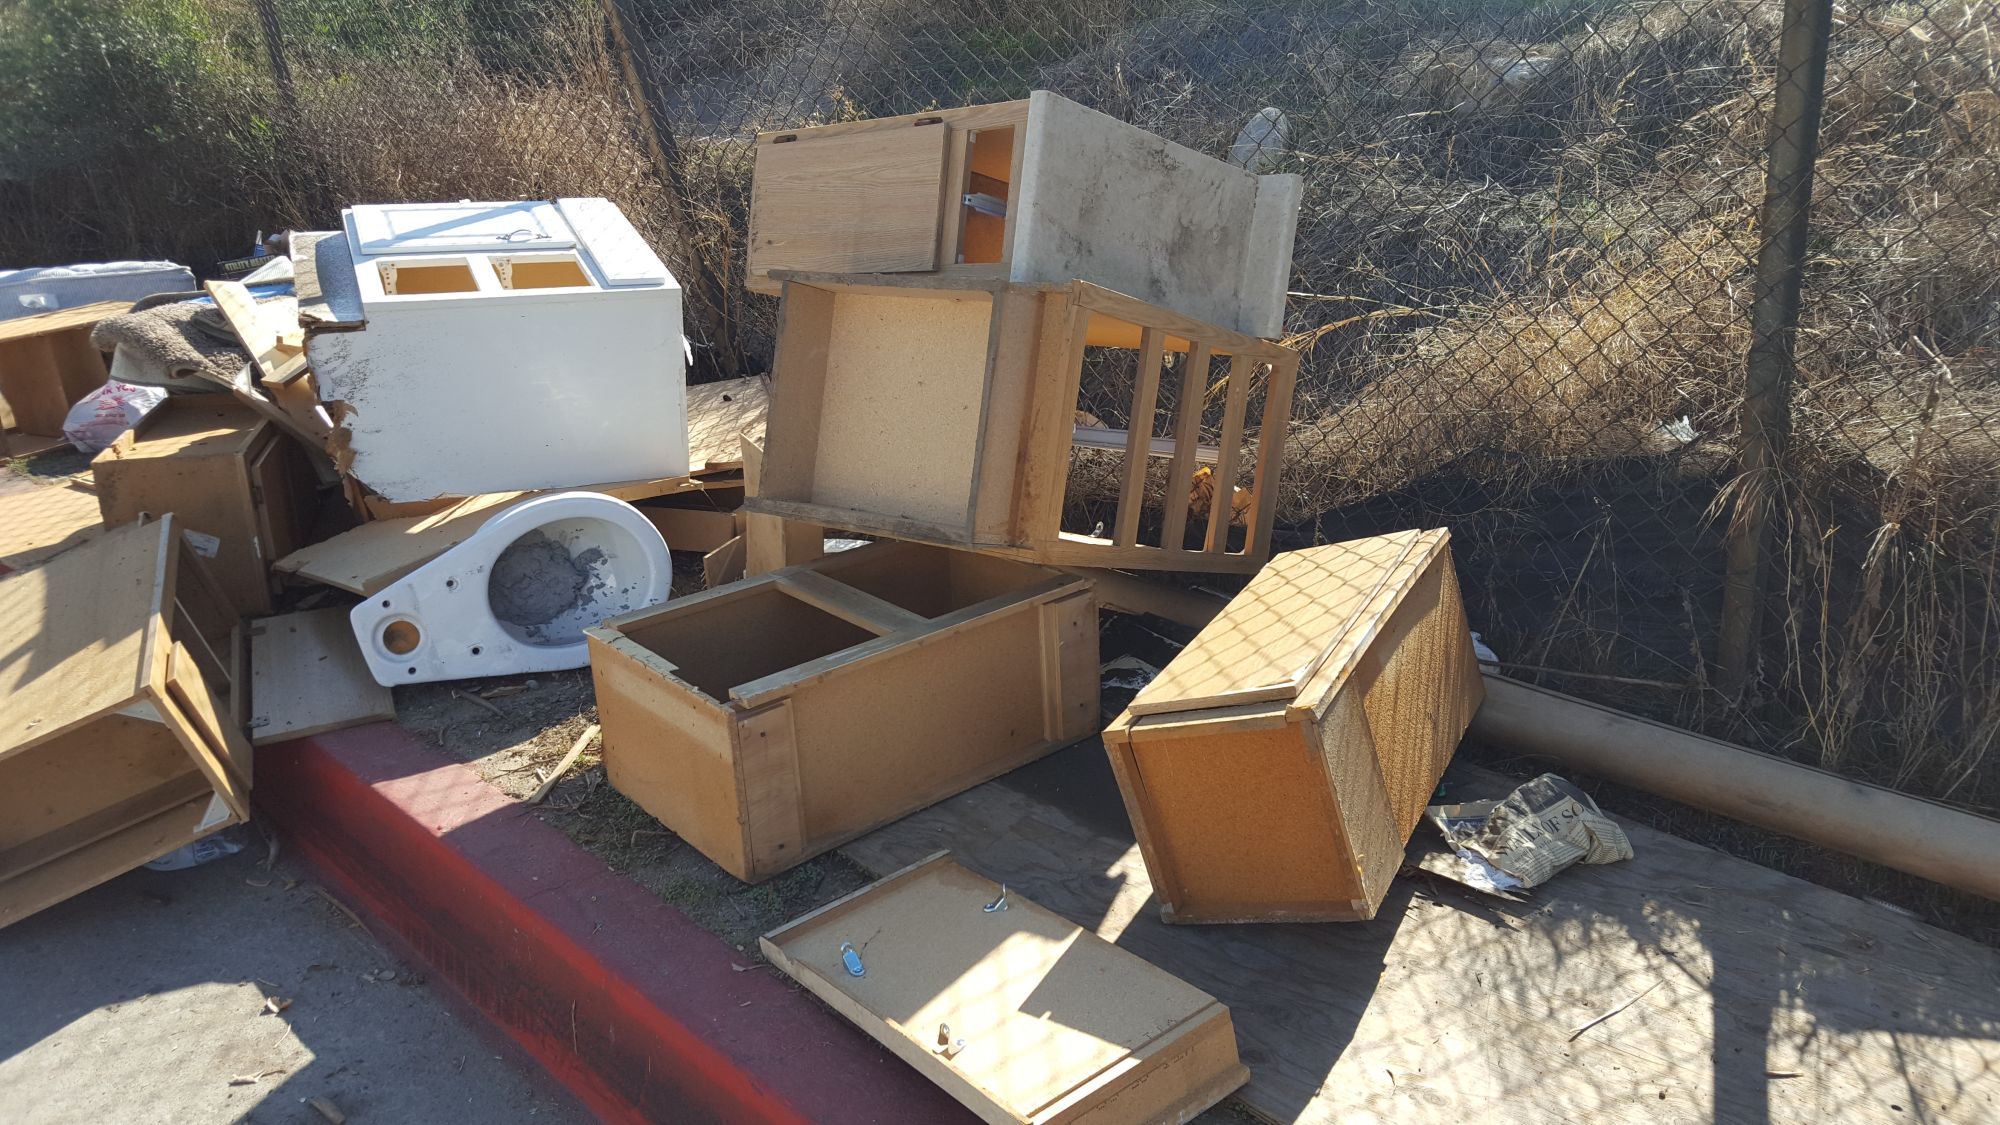 03-More-Glendale-Trash_1